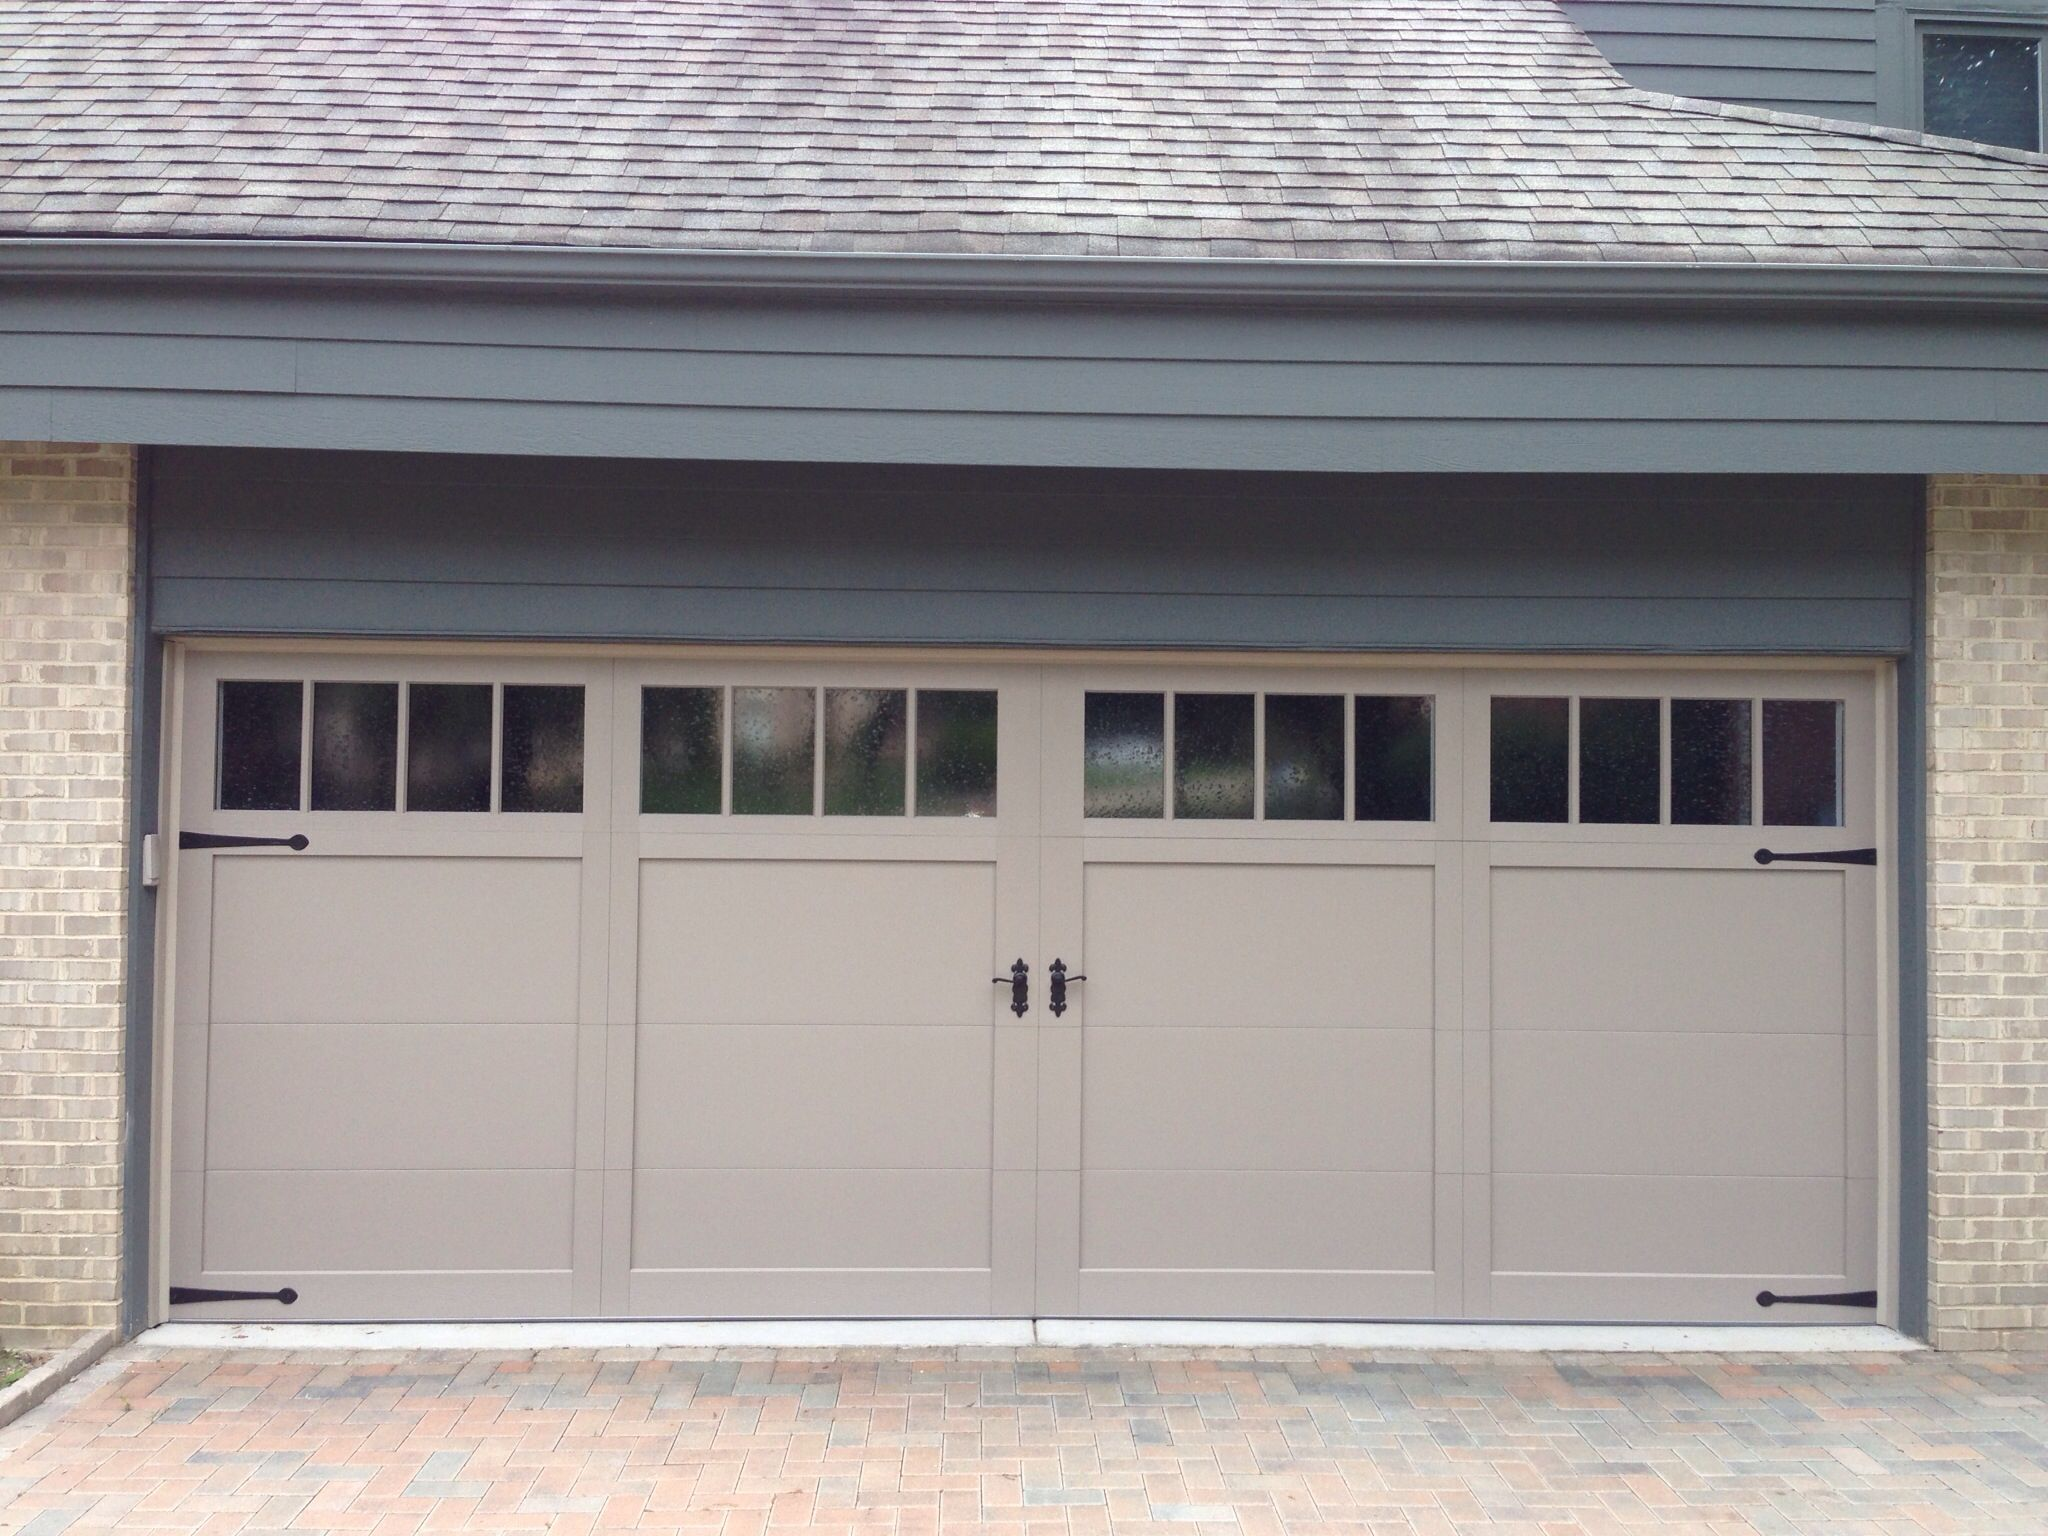 18 39 x 7 39 c h i garage door model 5331 color for Garage door colors